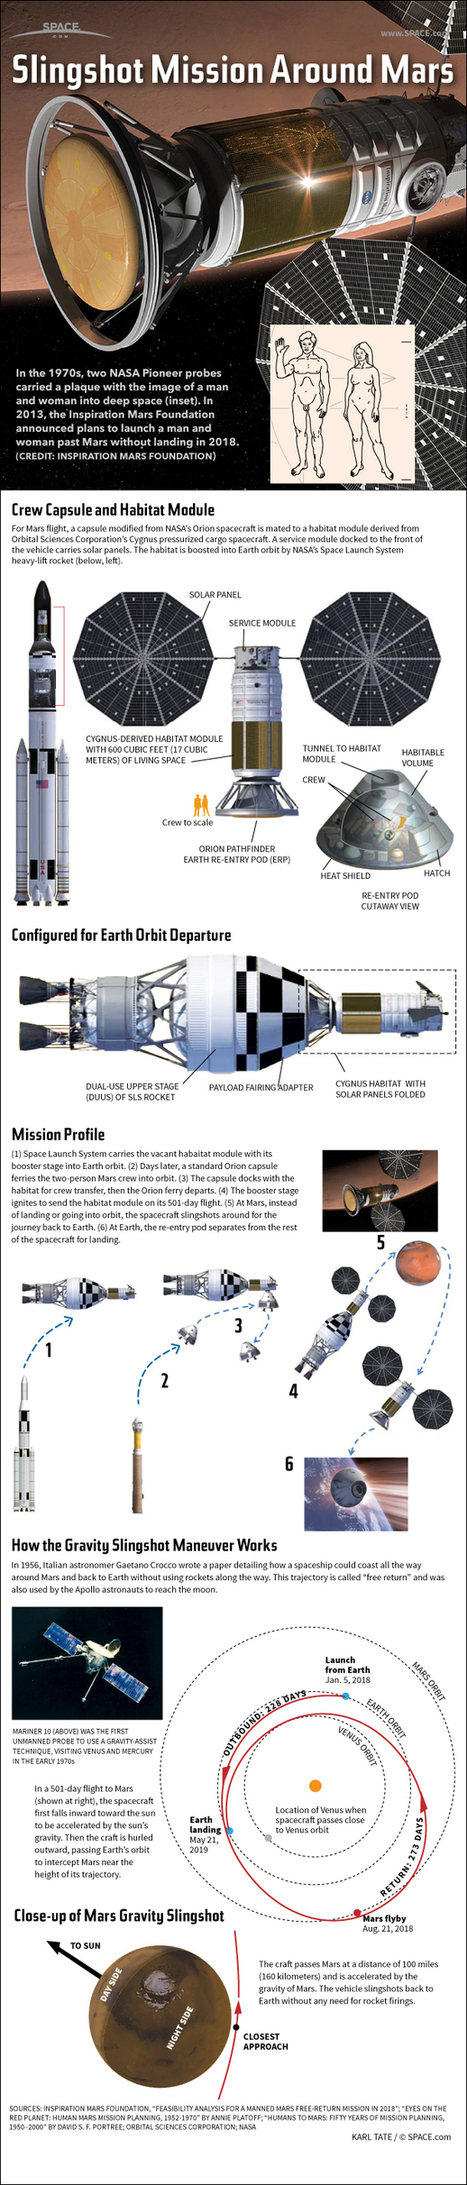 Dennis Tito's 2021 Human Mars Flyby Mission Explained (Infographic) | Space matters | Scoop.it